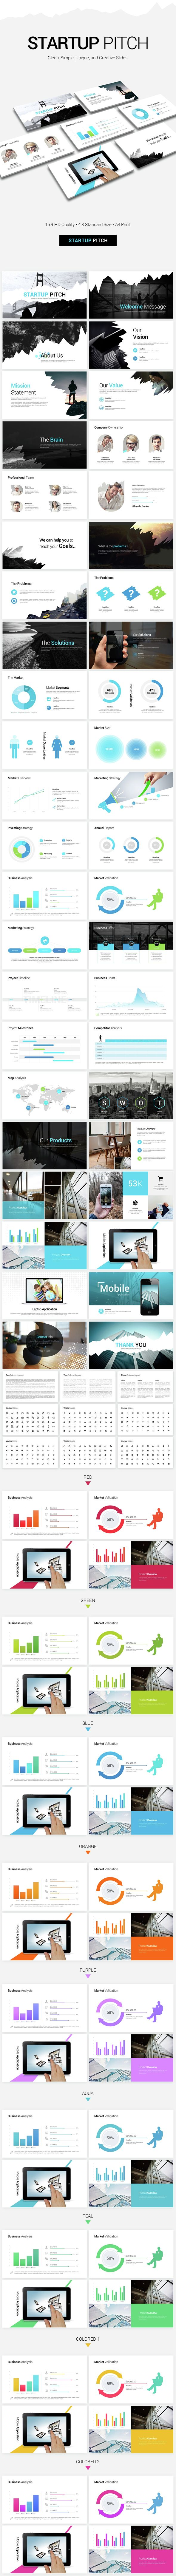 Startup Pitch PowerPoint Presentation Template. Download here…